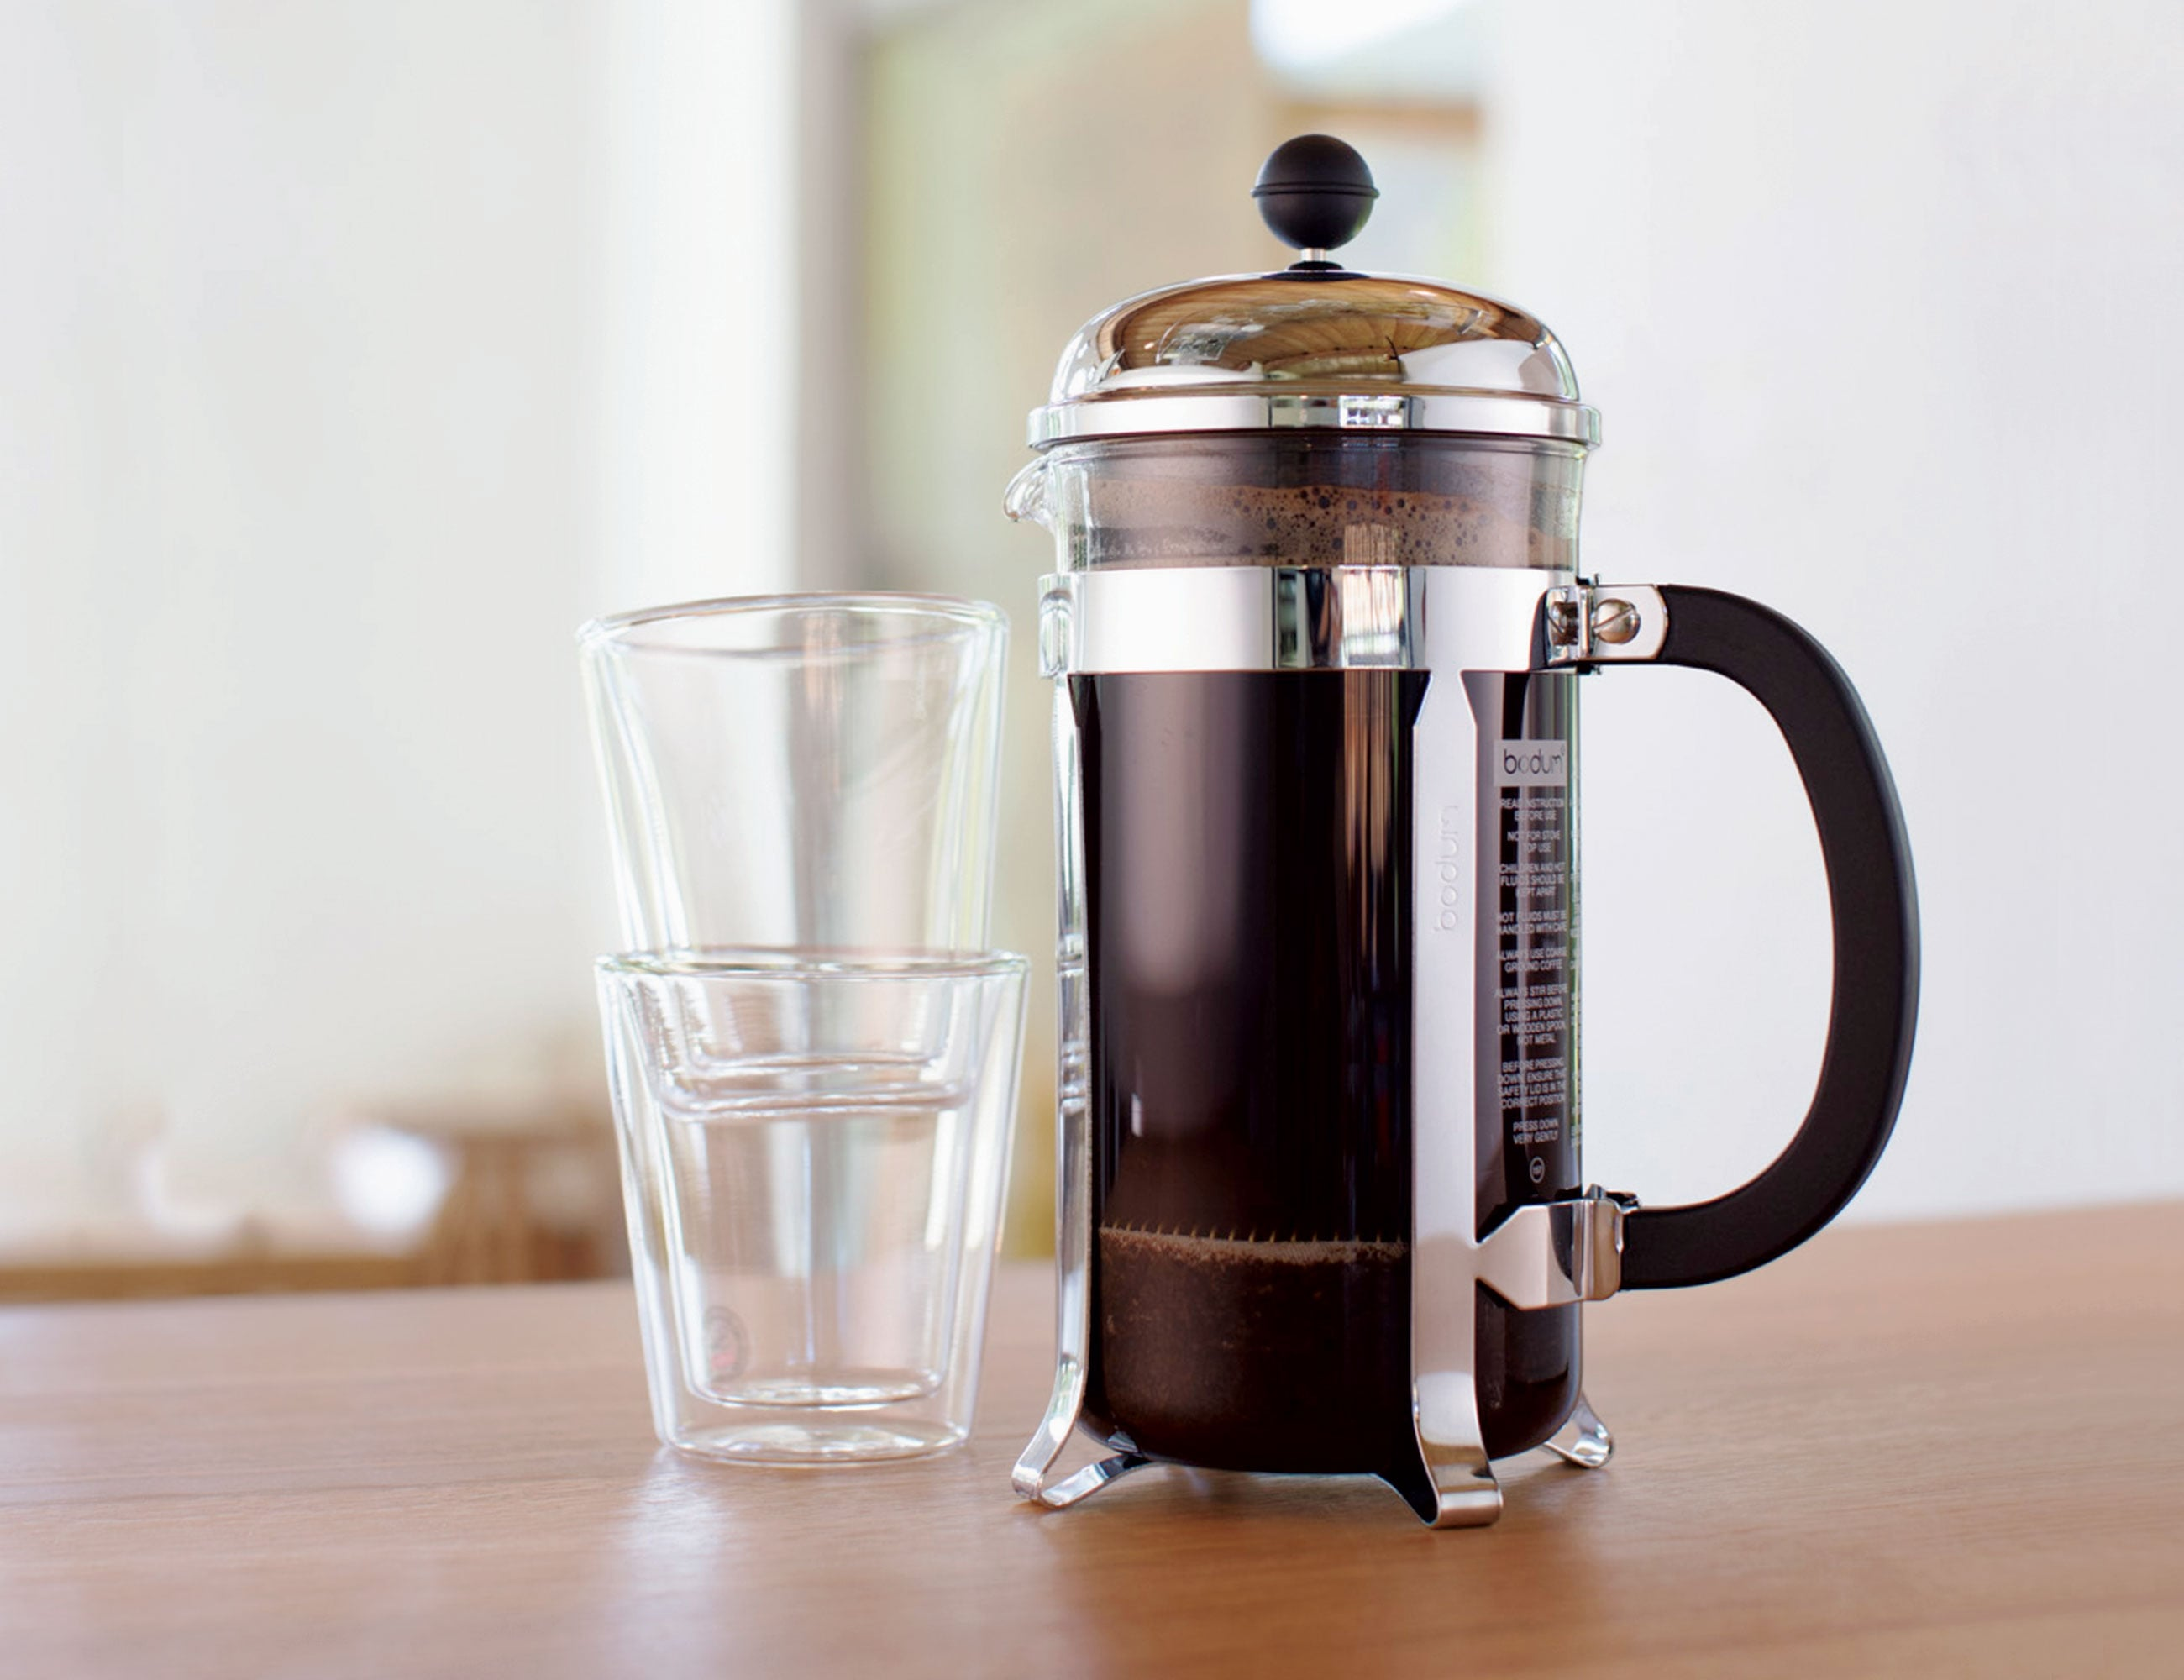 This coffee set from Bodum is the perfect gift for coffee lovers